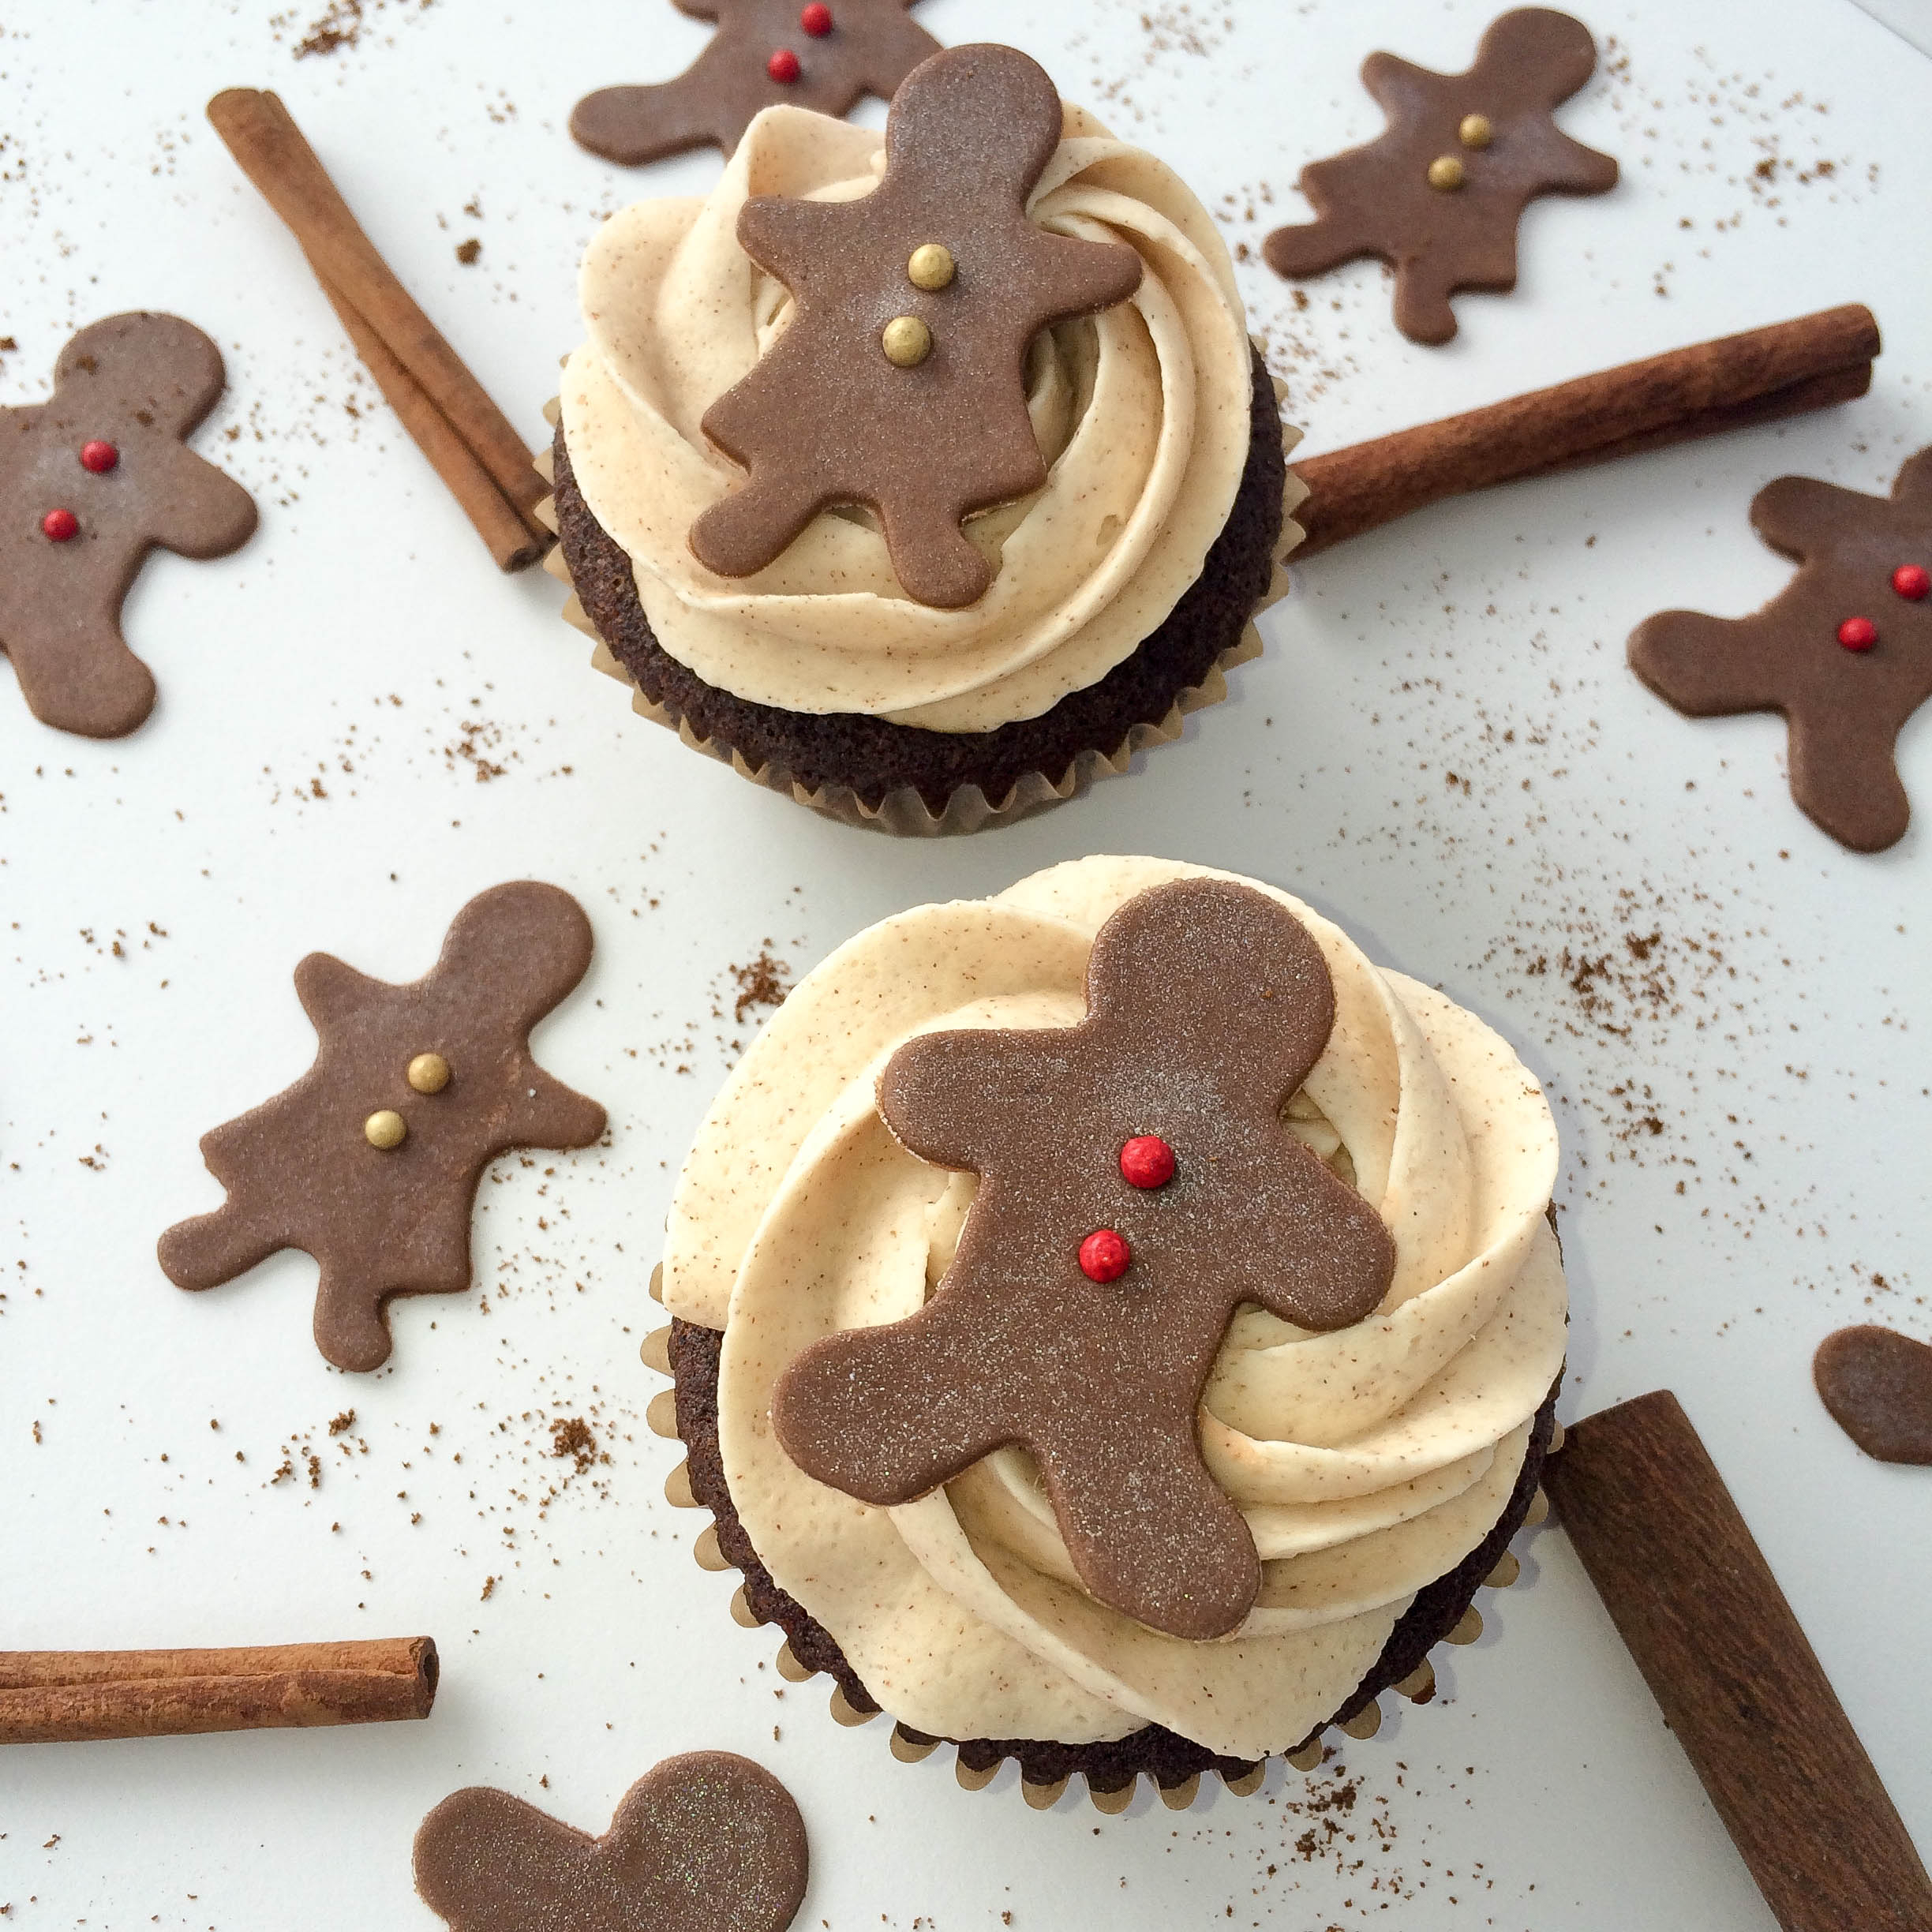 Gingerbread cupcakes with chocolate fondant boy and girl